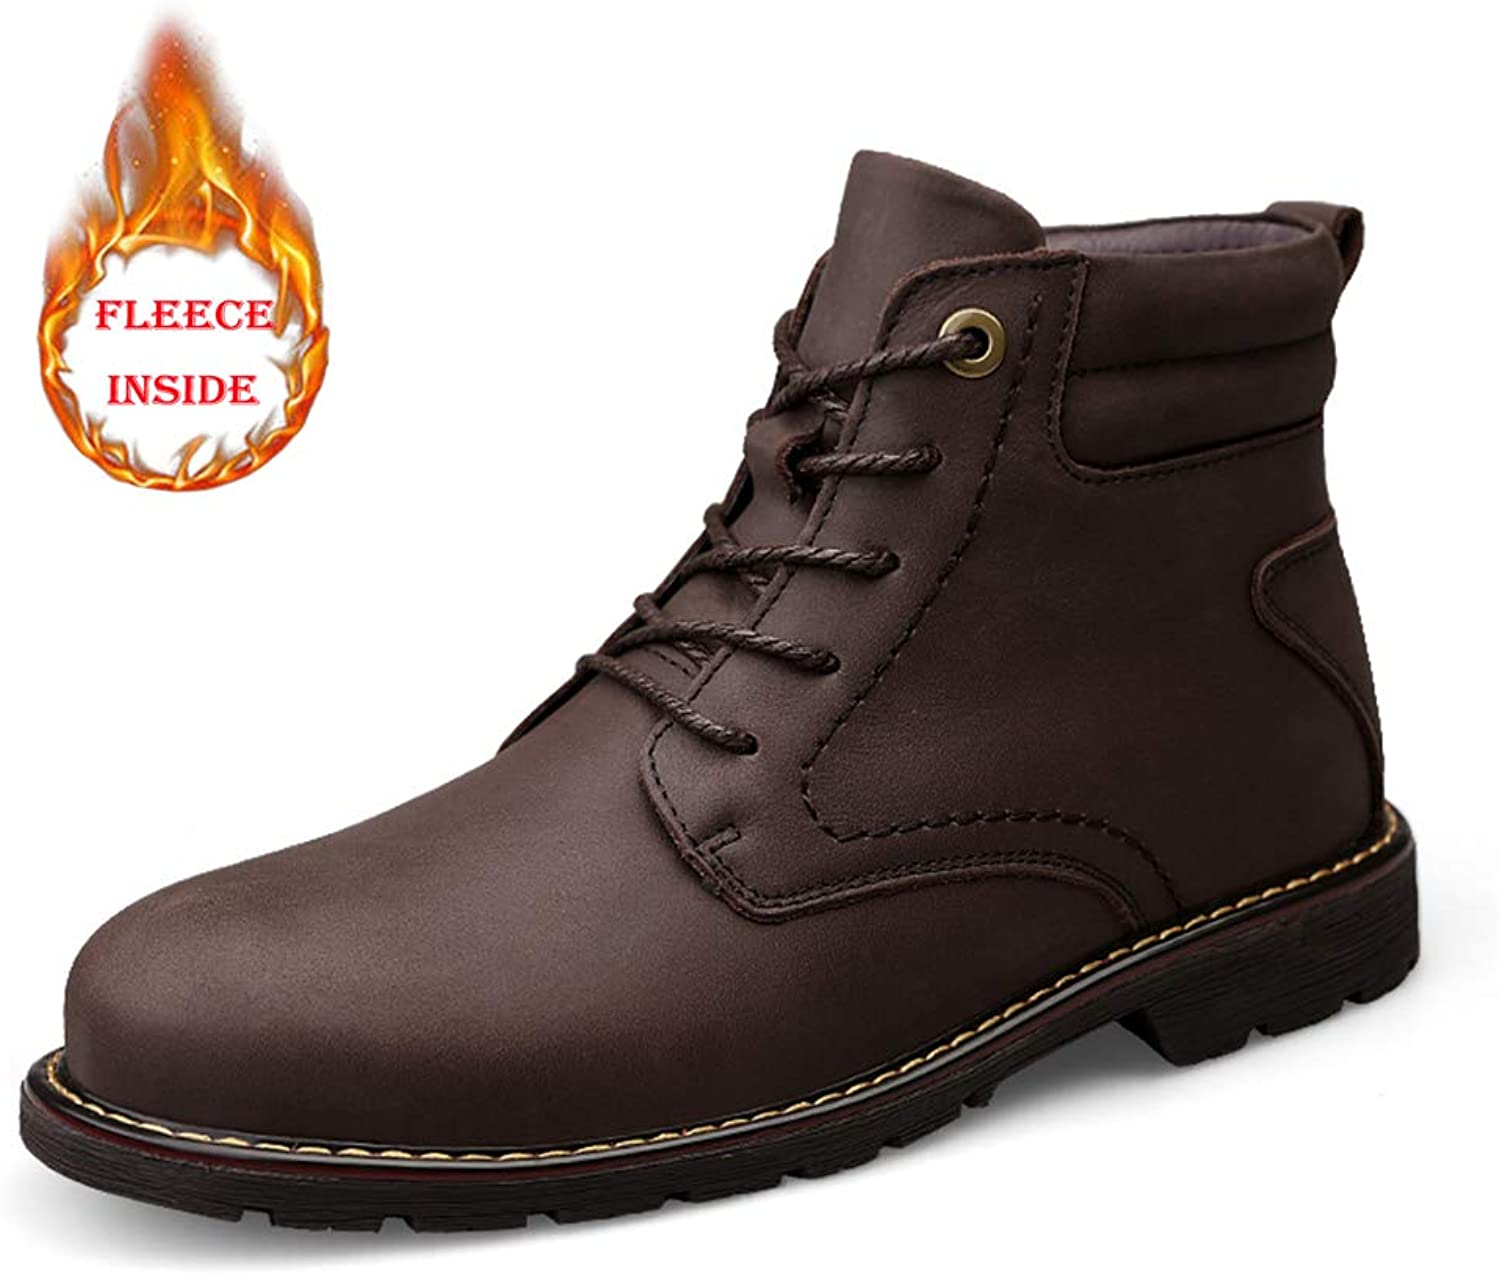 Seeker Casual Rindsleder High-Top-Outdoor-Laufsohle Stiefel Stiefel (Warm Velvet Optional) Herrenmode Stiefel New Winter Style  Werksverkauf